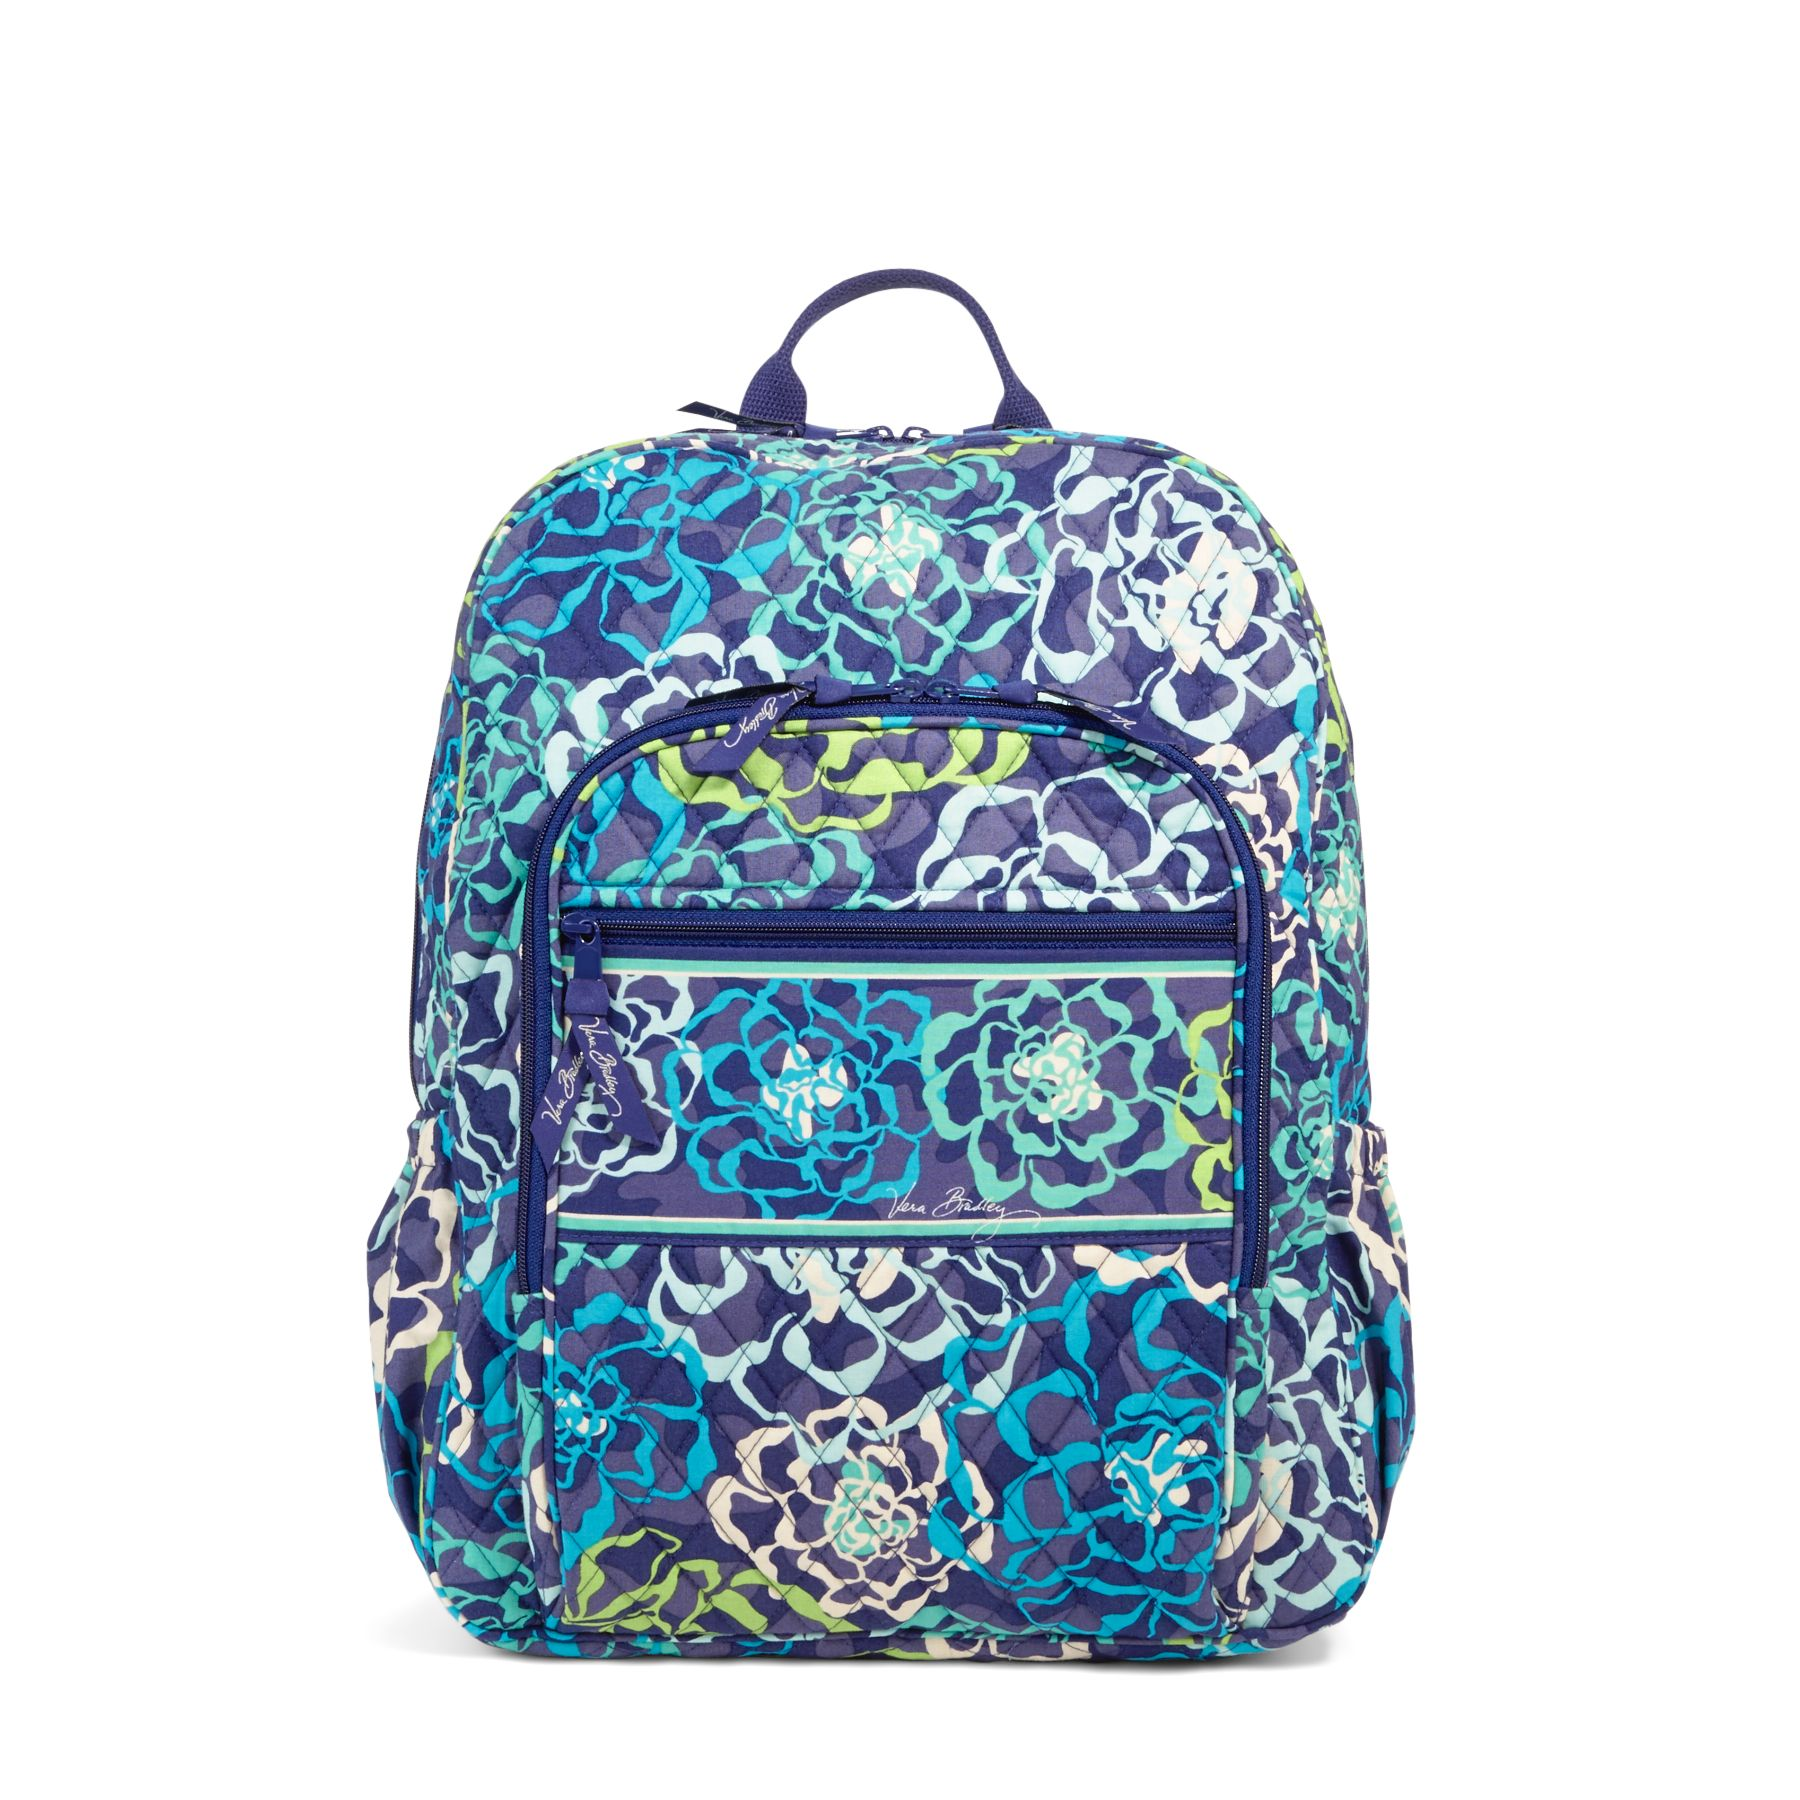 Vera Bradley discount gift cards on Raise offer savings on your favorite Vera Bradley pattern. Whether it's the black and white flower apron, or the original blue and brown paisley overnight bag, you can find great gift ideas for girls and accessories of all sorts at Vera Bradley.